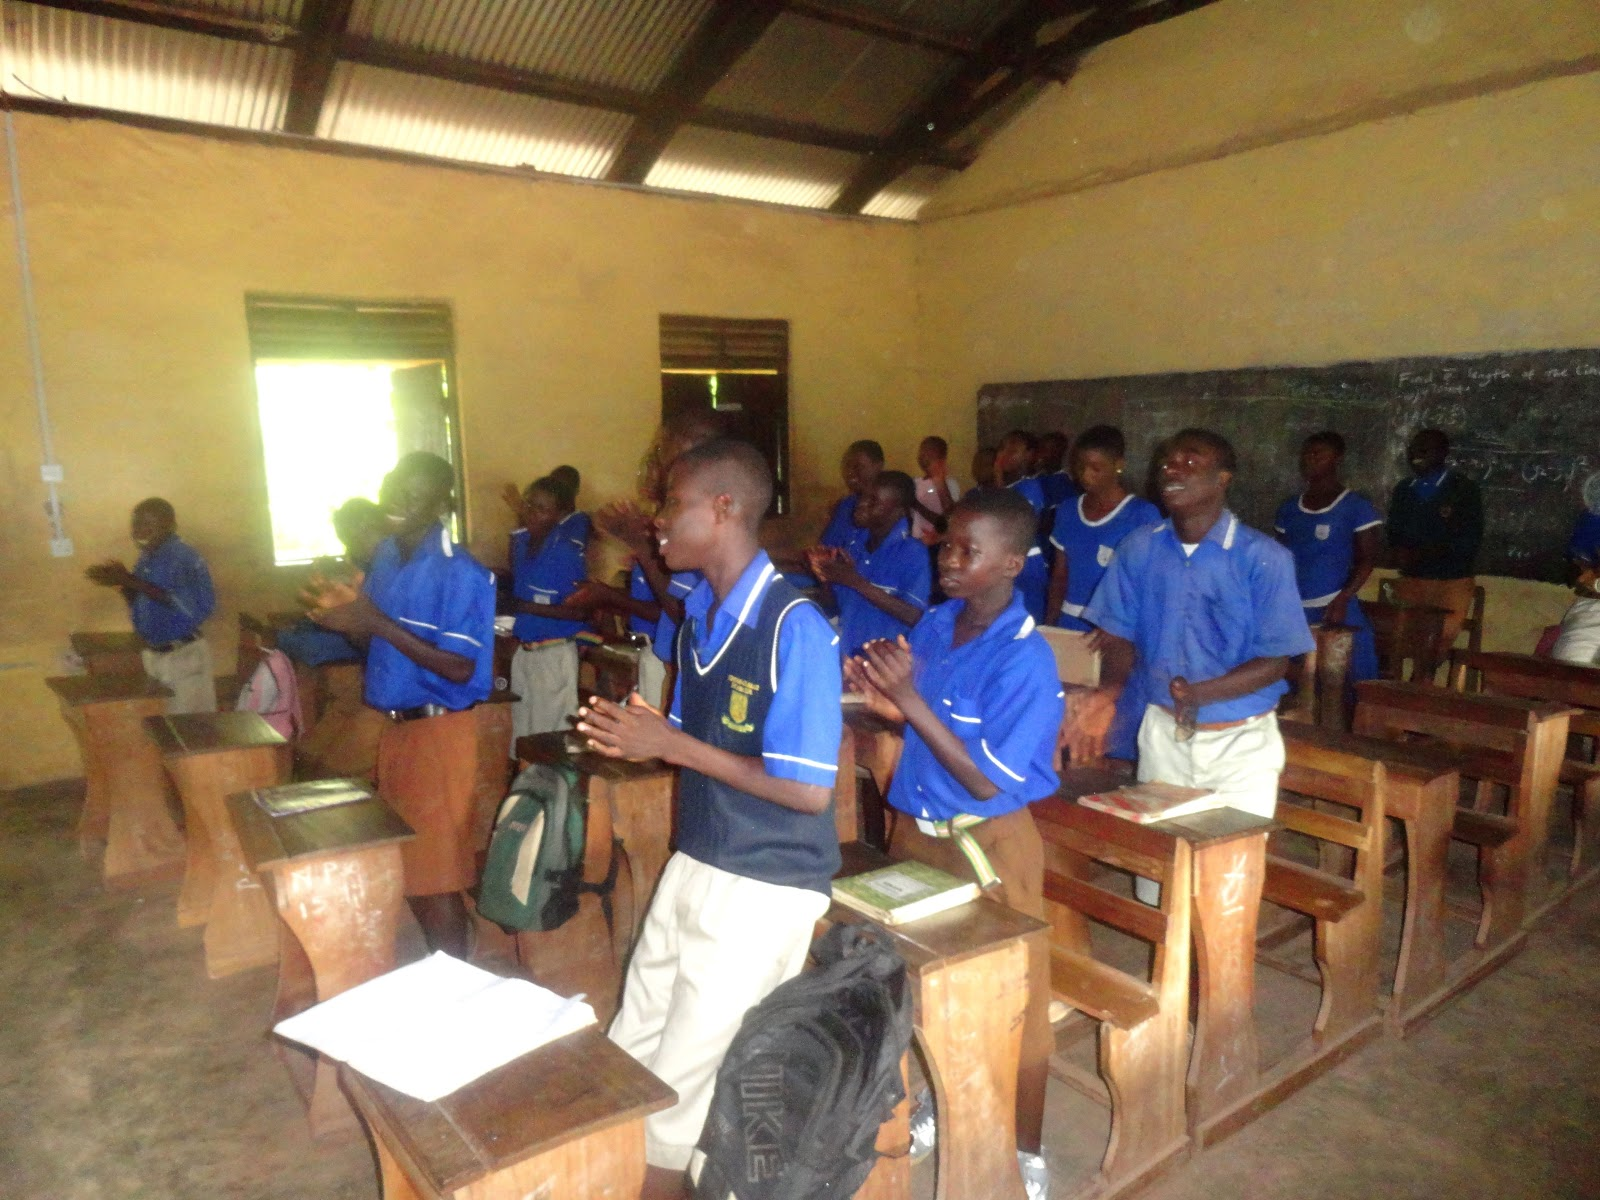 education in ghana Education in ghana was mainly informal, and based on apprenticeship before  the arrival of european settlers, who introduced a formal education system.